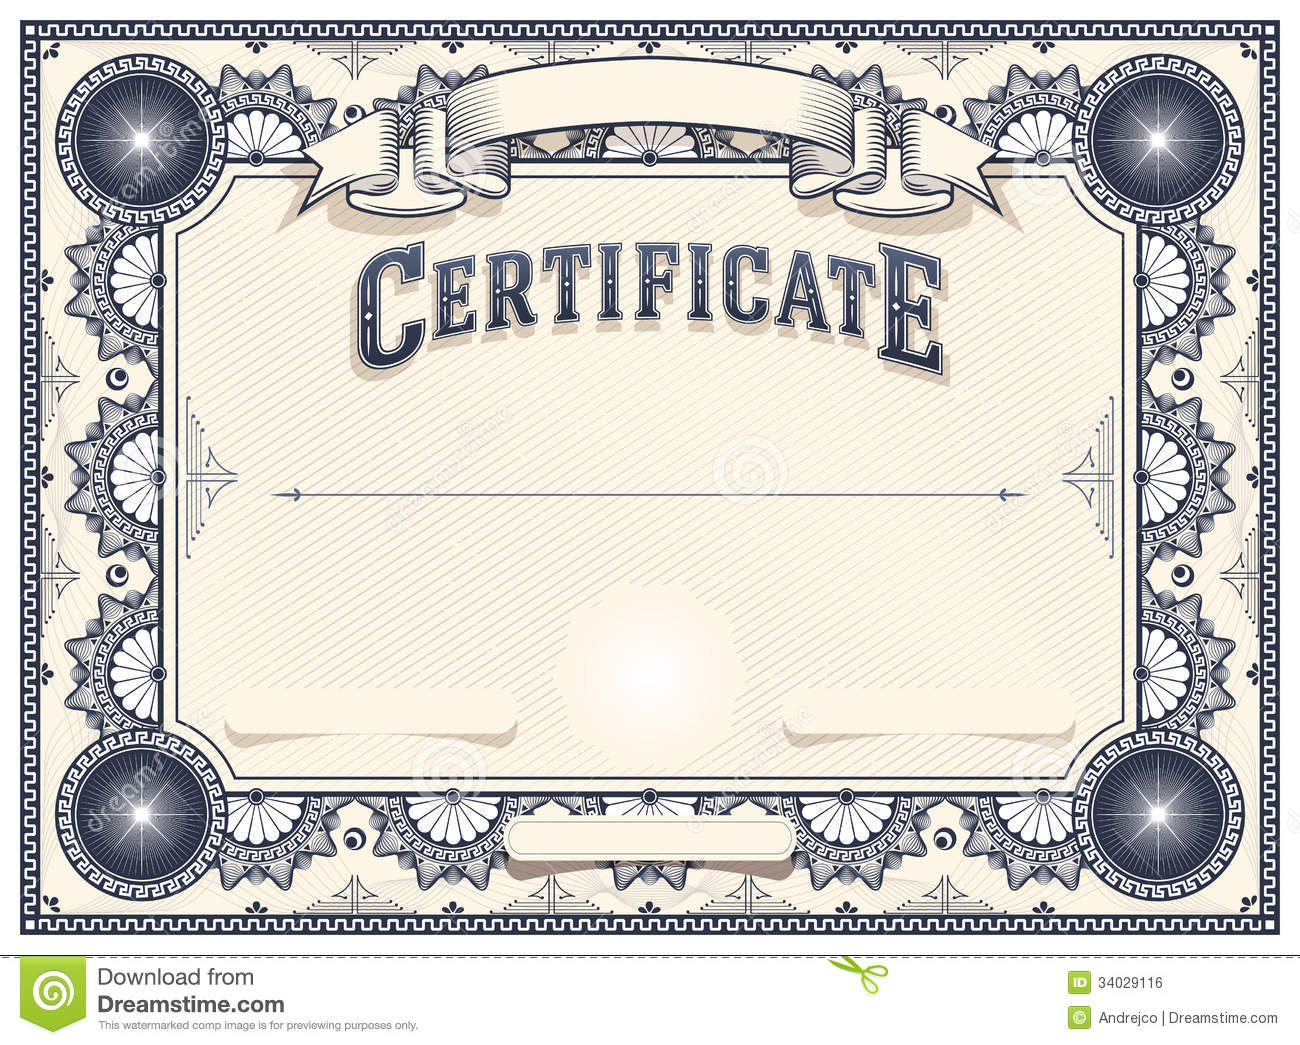 Certificate or diploma template royalty free stock image image